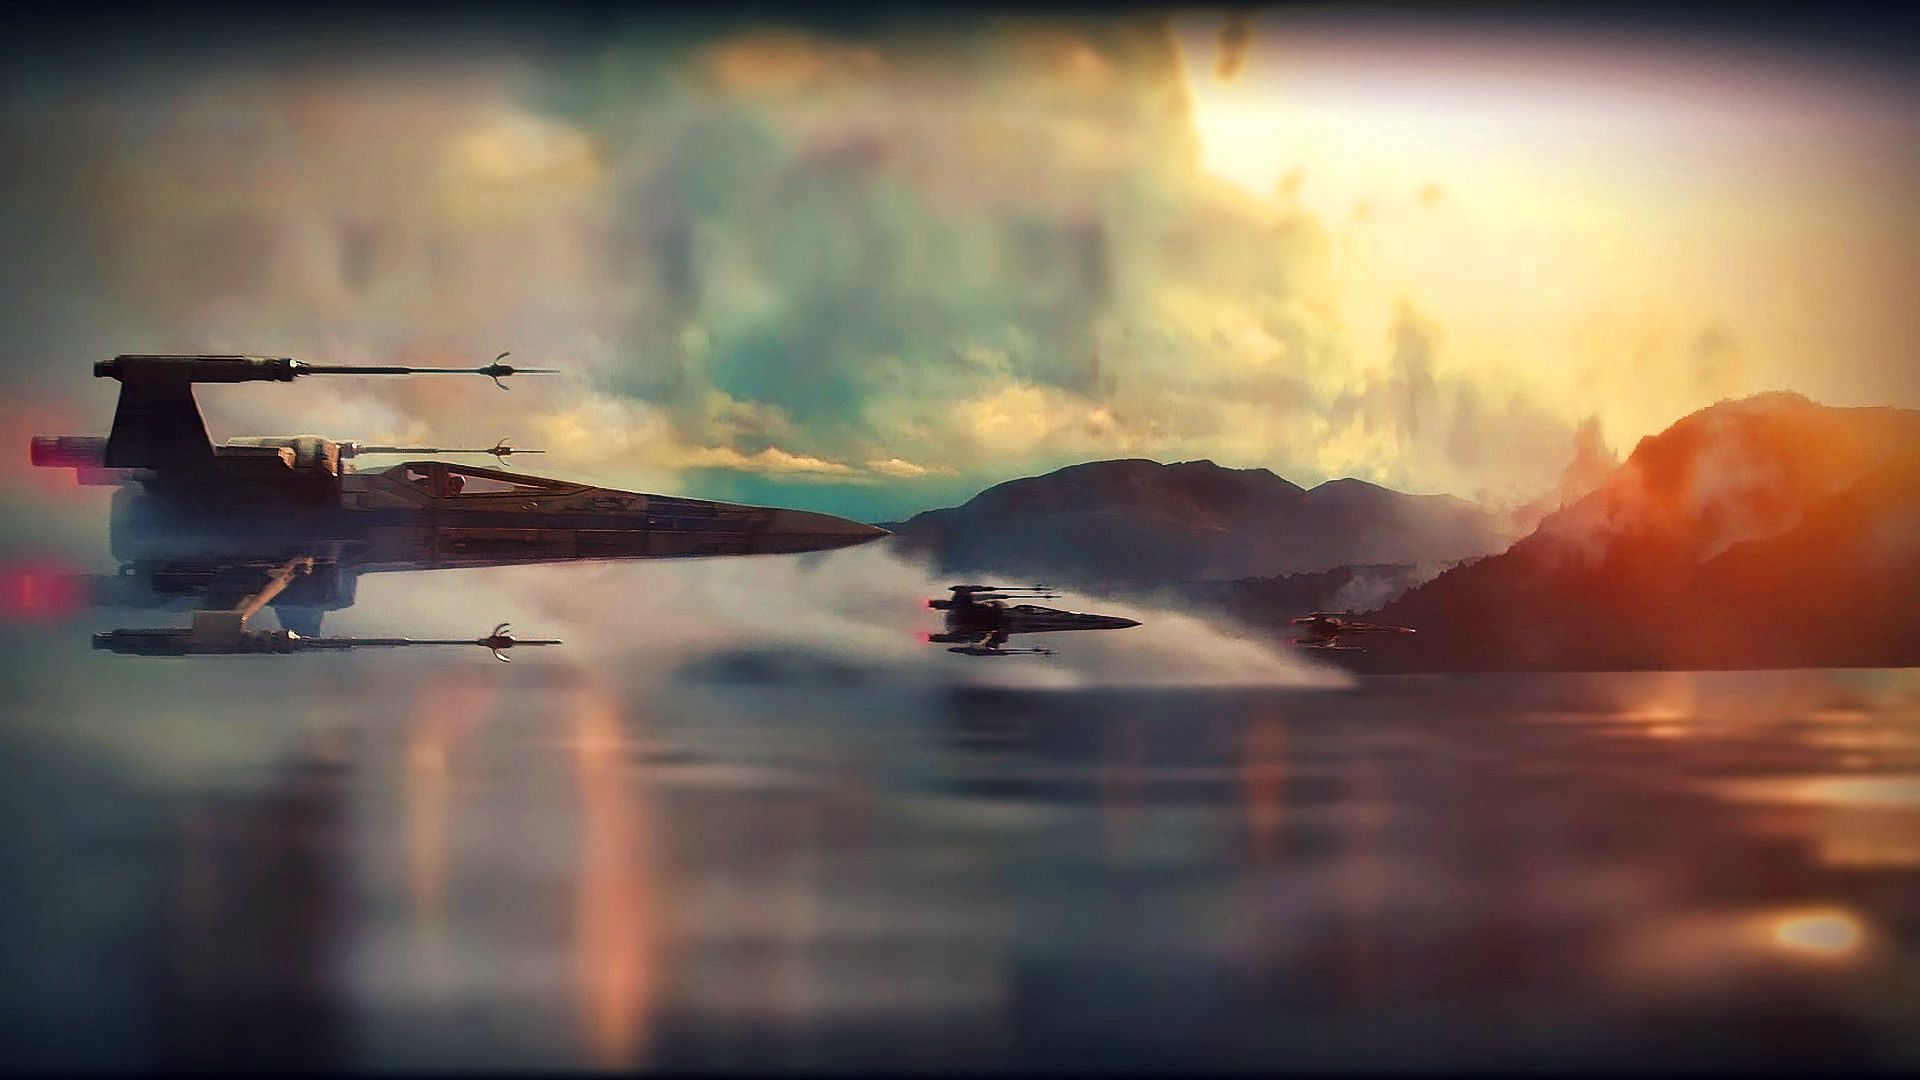 Star Wars Dual Monitor Wallpapers Album On Imgur 1680 480 1920 1080 Dual Screen Wallpapers 29 Wallpapers Star Wars Wallpaper Star Wars Vii Star Wars Film